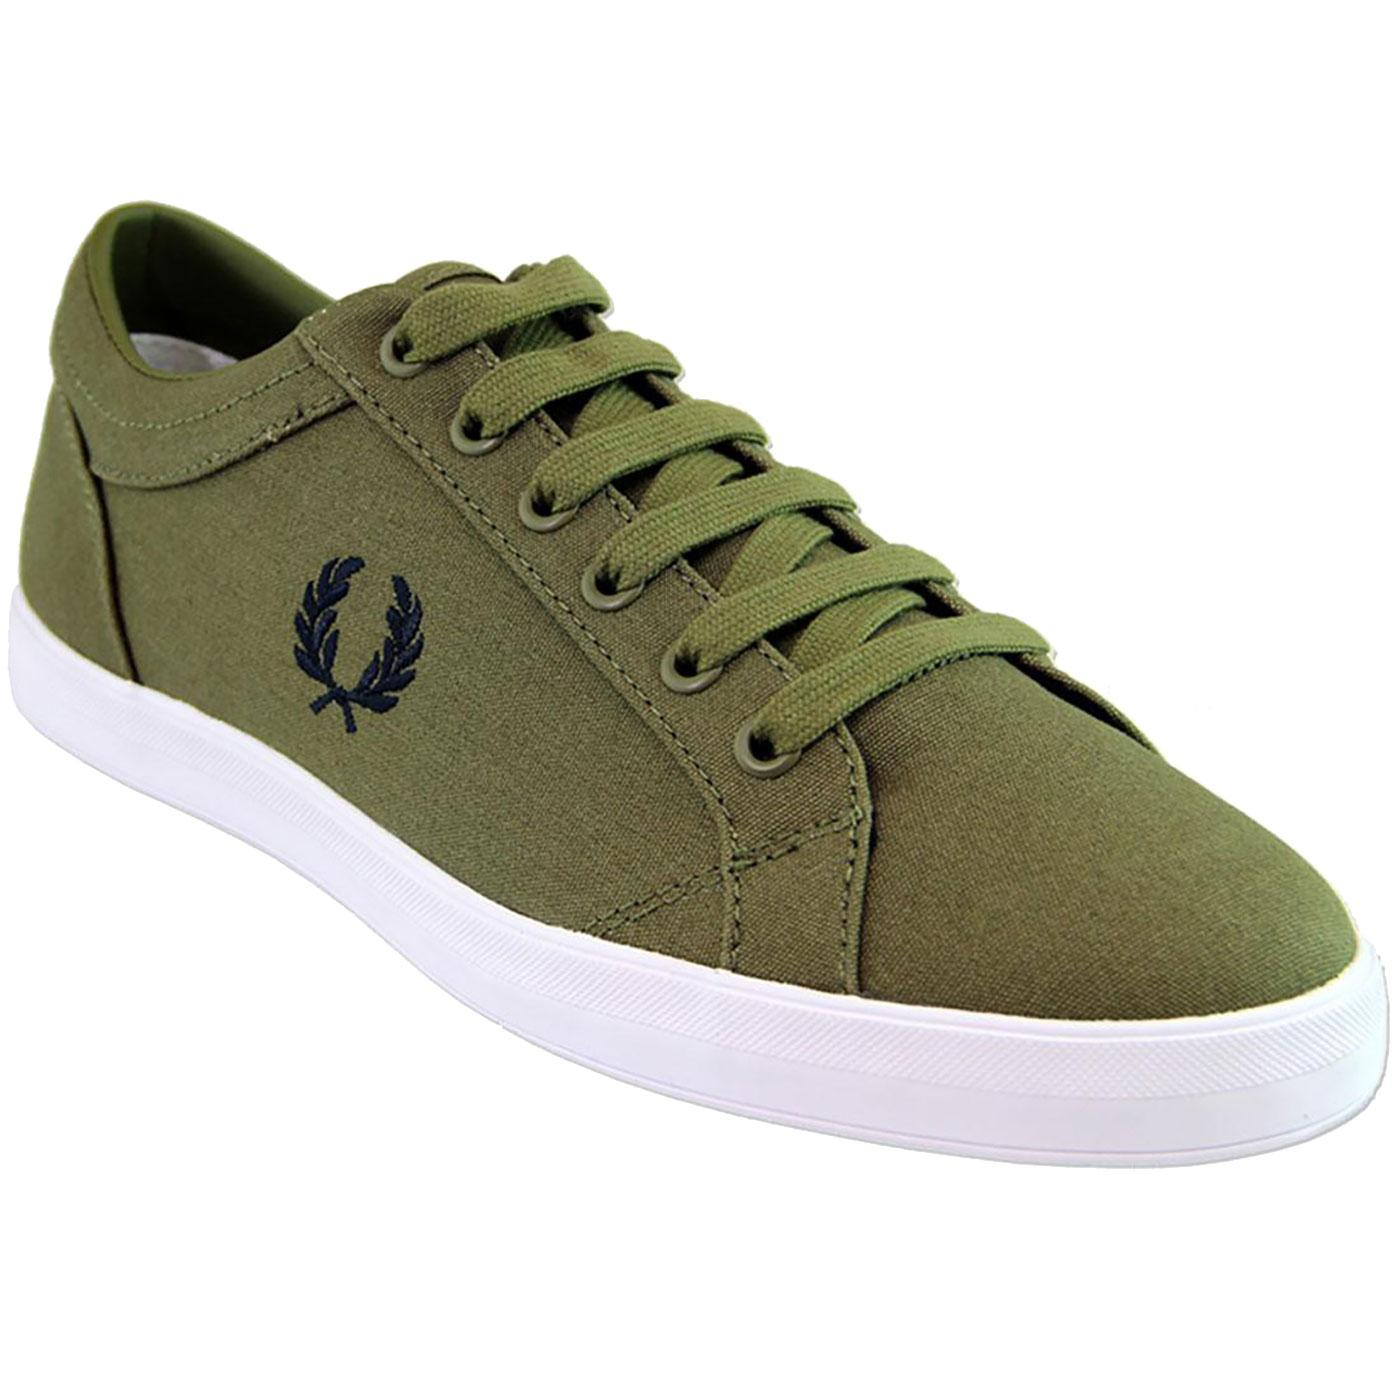 Baseline FRED PERRY Retro Casual Canvas Trainers O